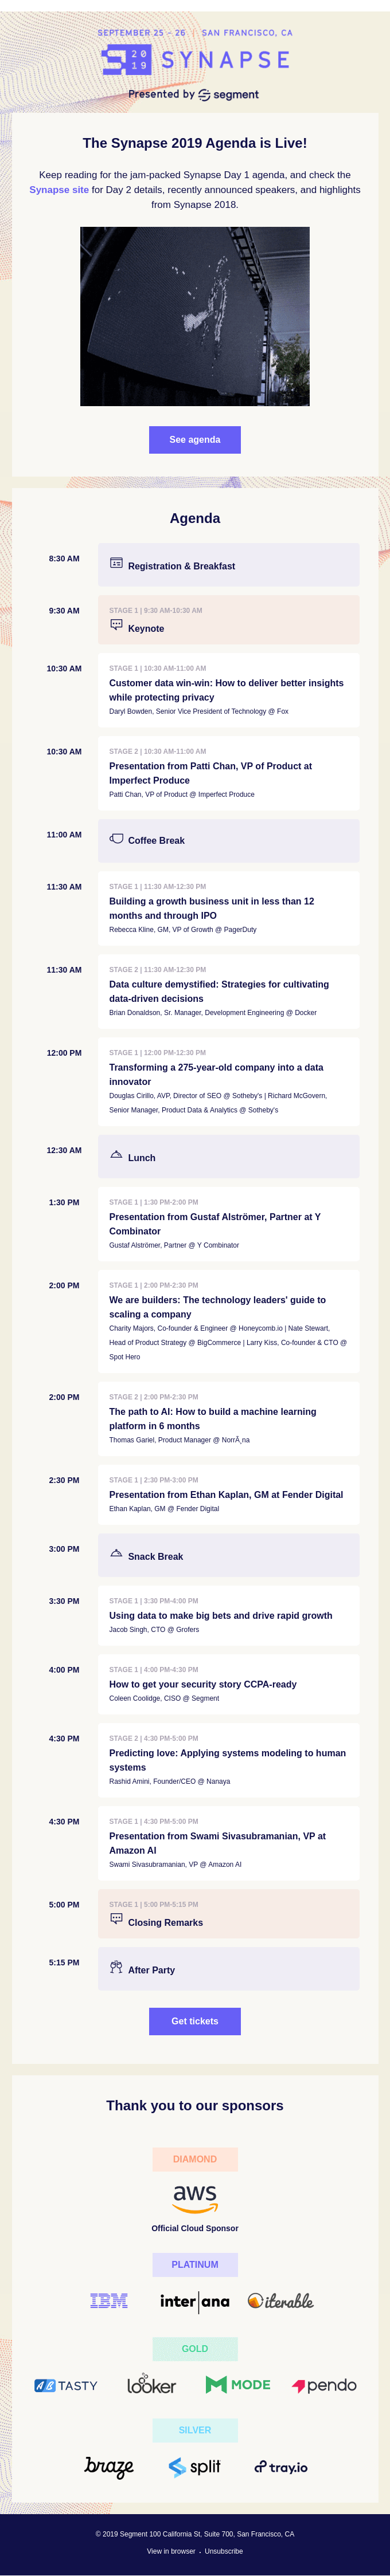 The Synapse 2019 Agenda is here!